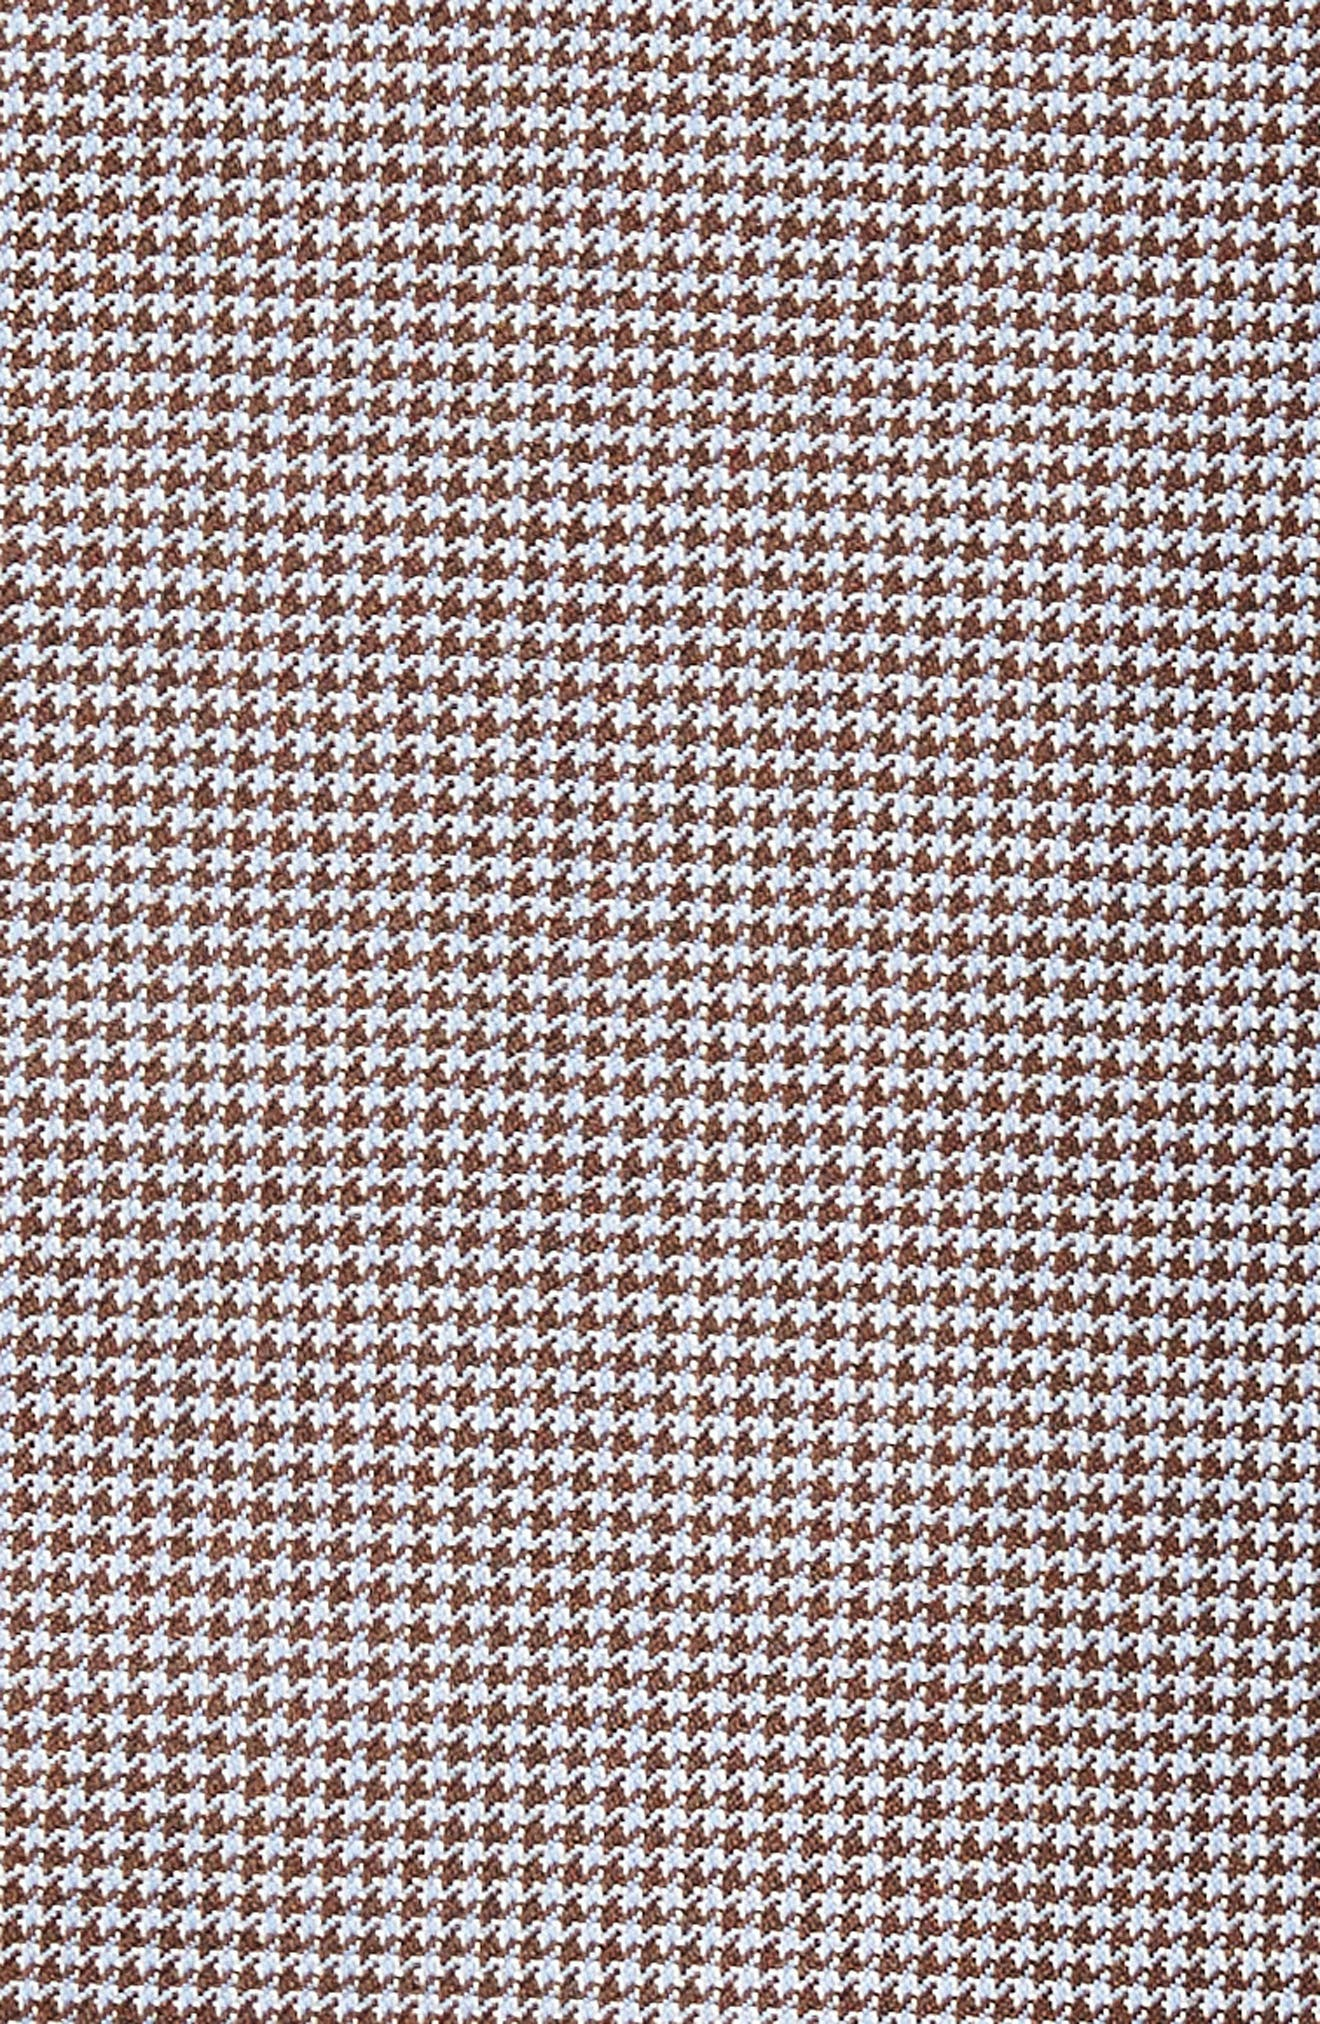 Classic Fit Houndstooth Wool Sport Coat,                             Alternate thumbnail 6, color,                             420